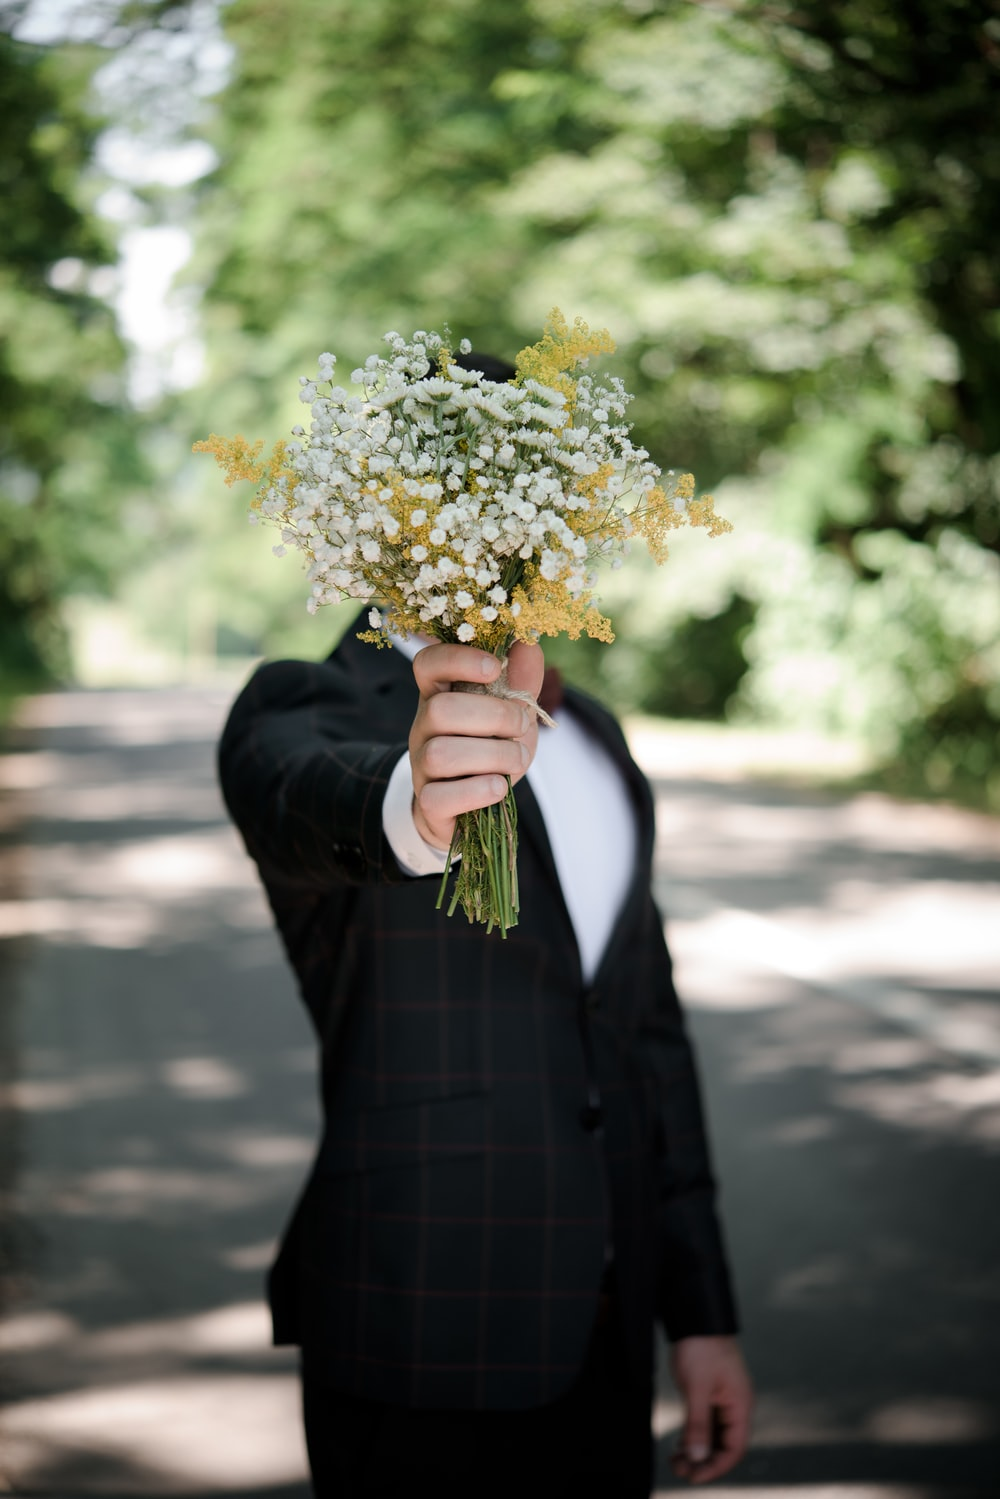 selective focus photo of man wearing black suit jacket holding flower bouquet